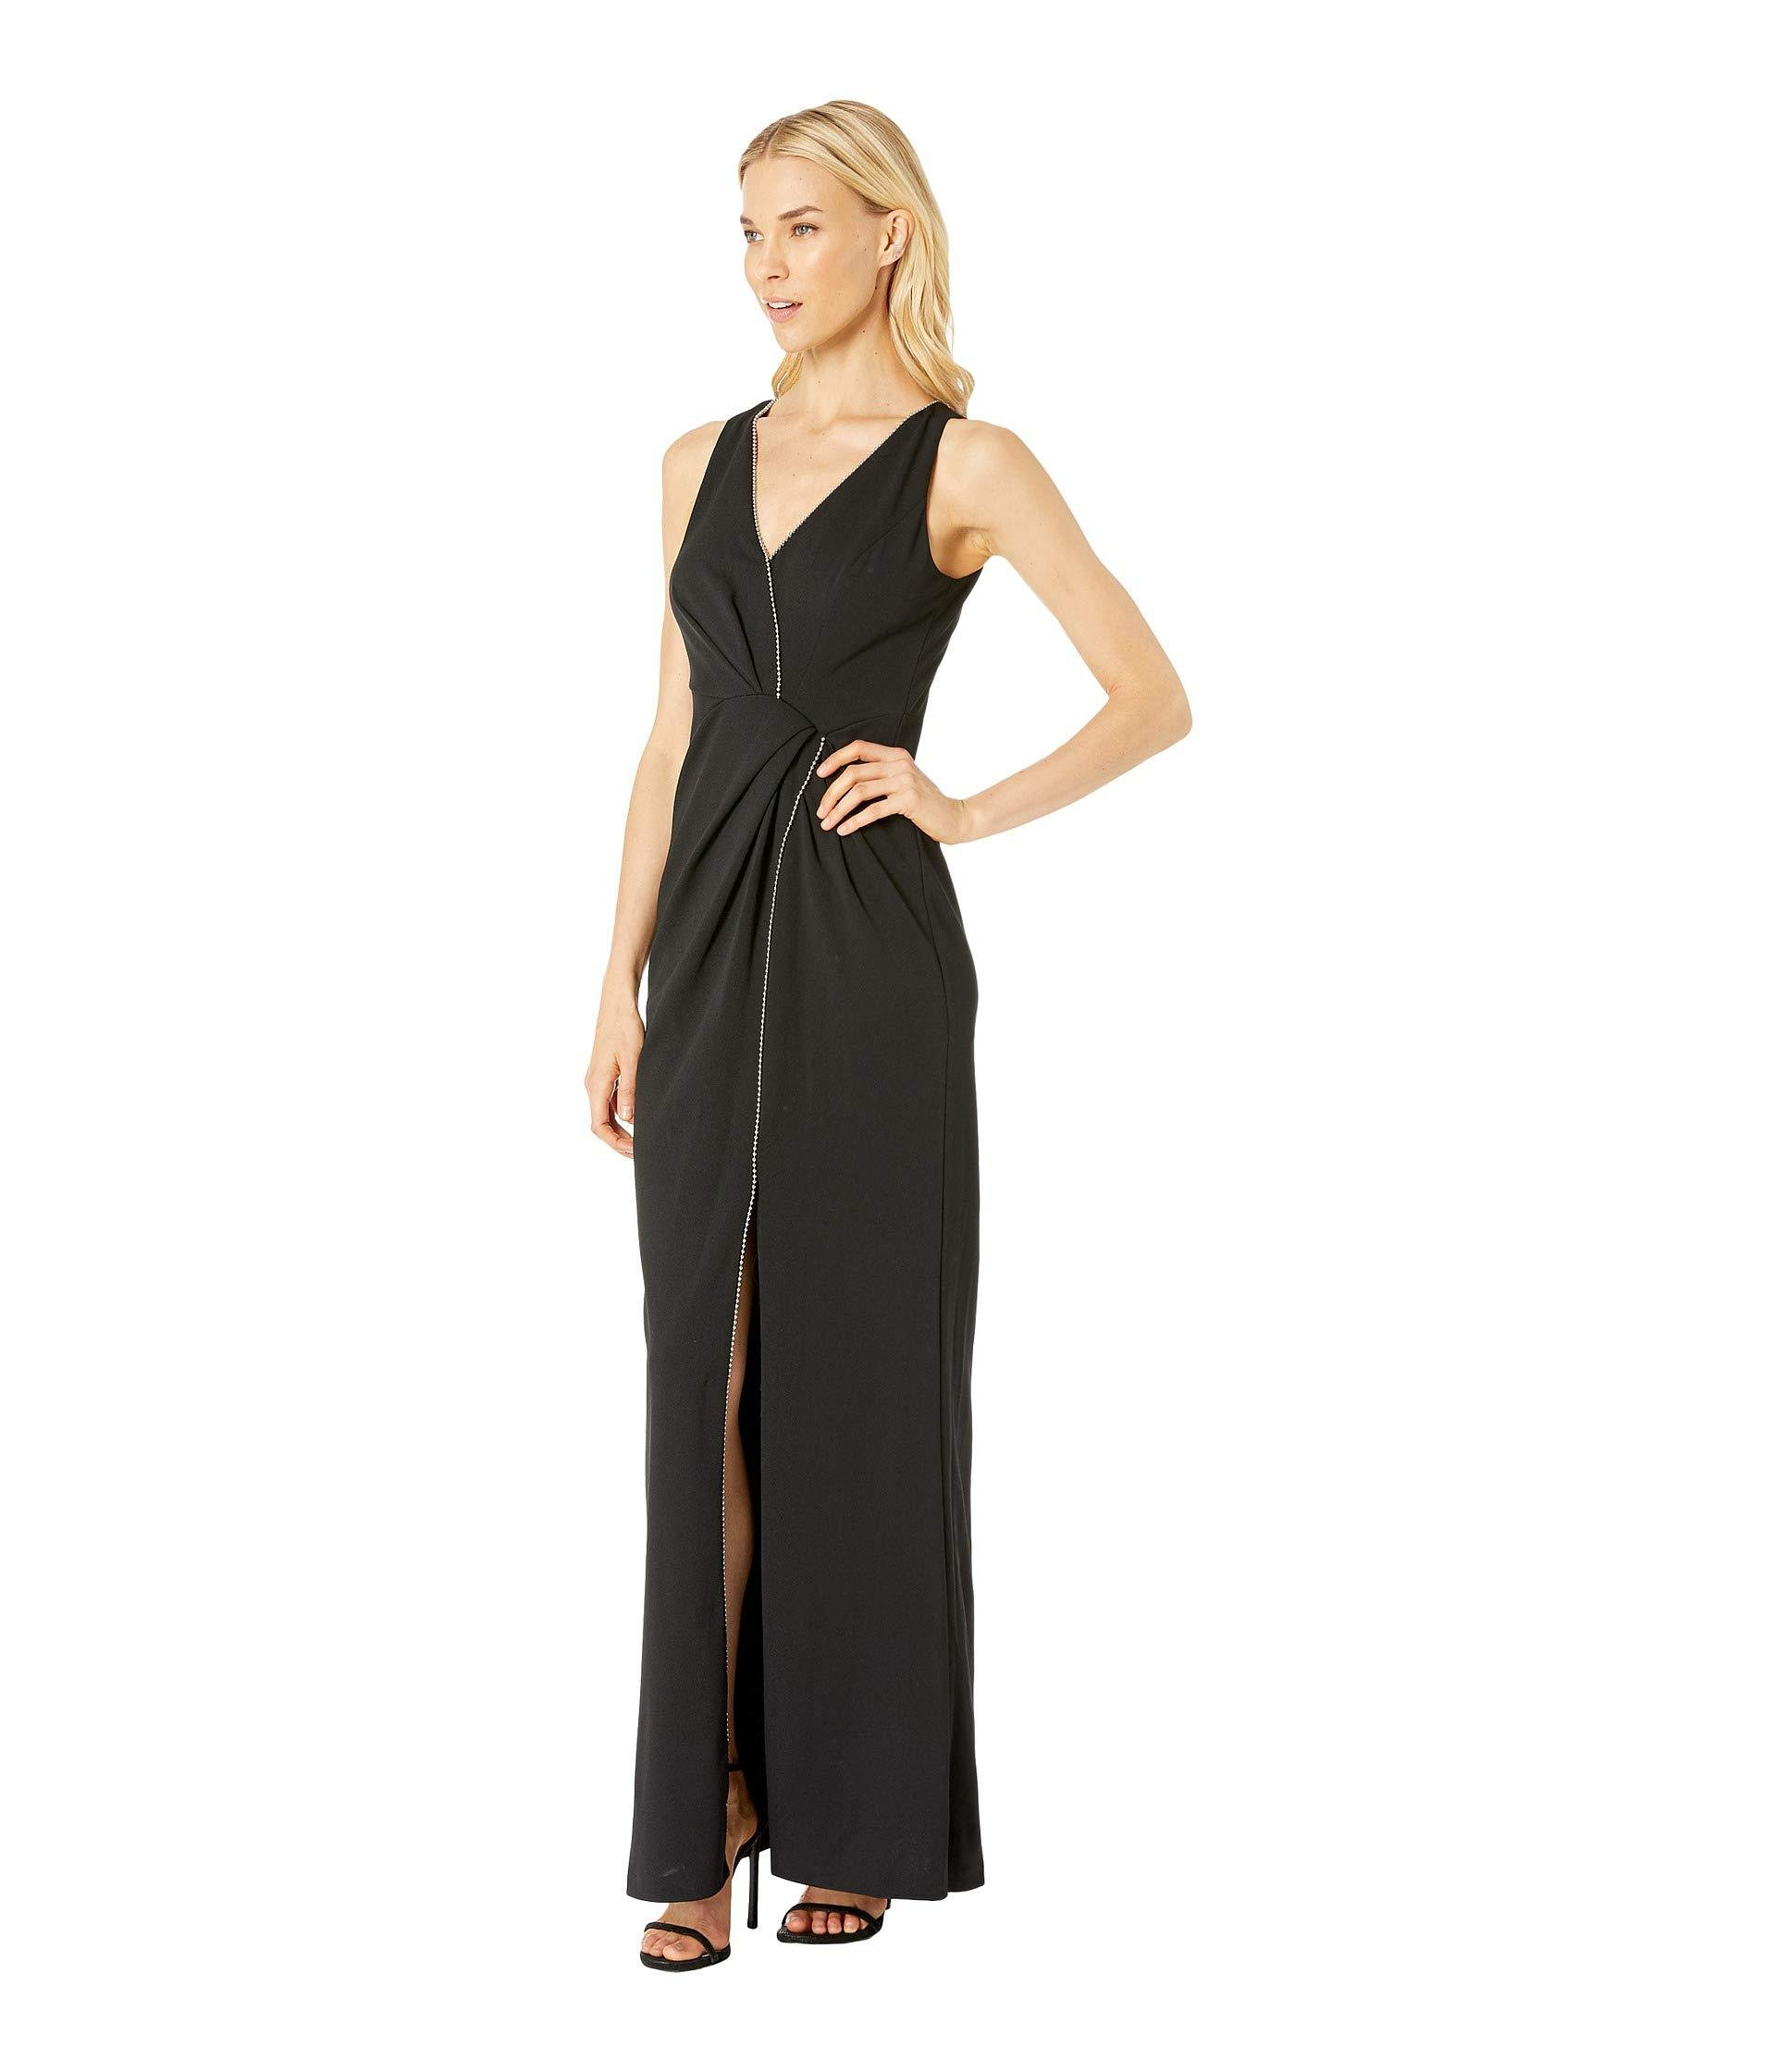 6539ca2d293 Lyst - Adrianna Papell Halter Long Dress (black) Women s Dress in Black -  Save 37%